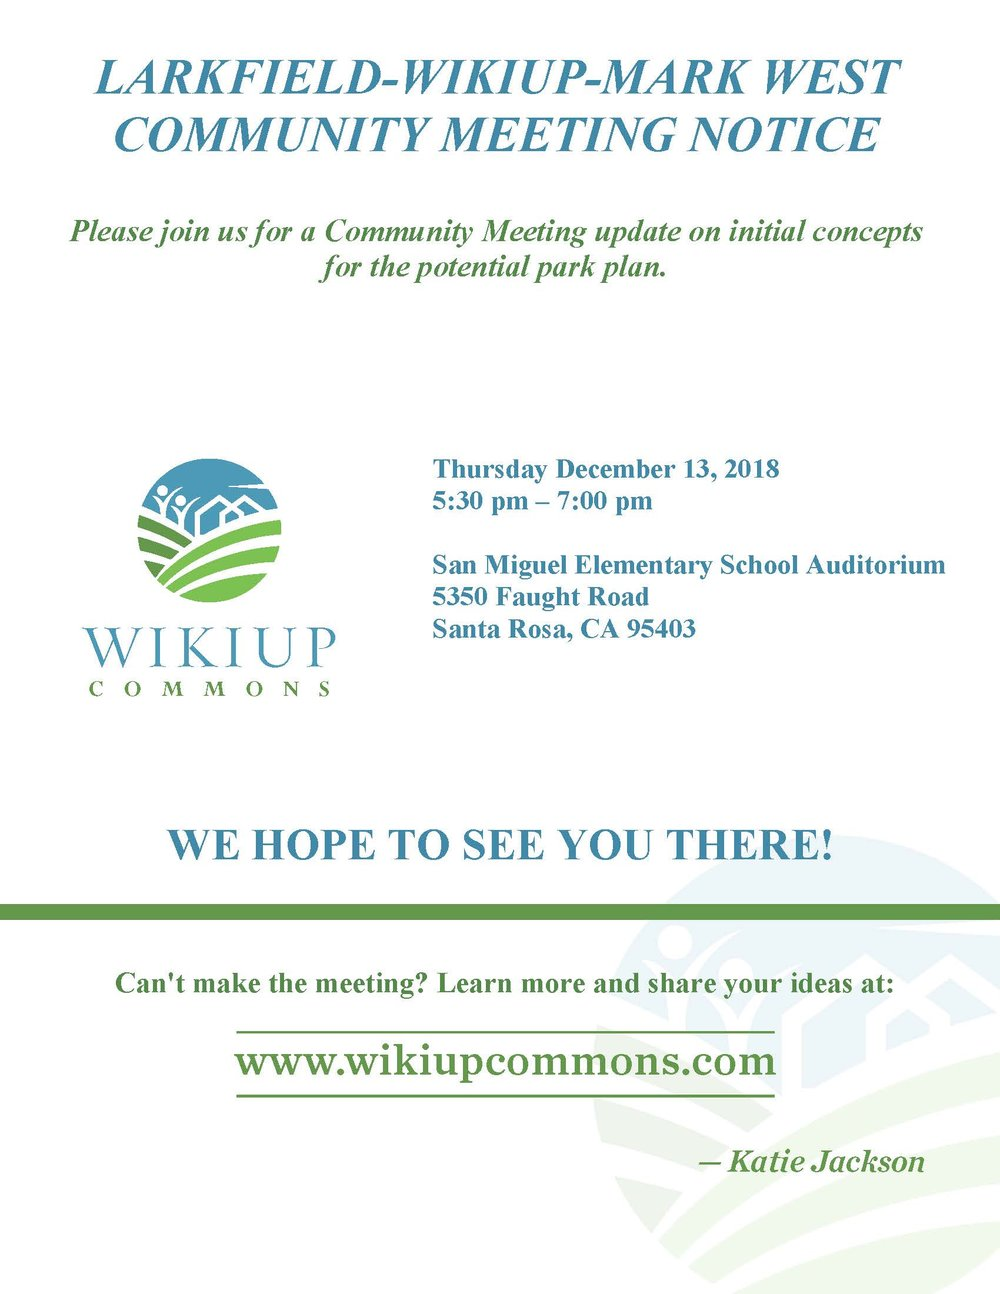 Wikiup Commons Flyer for 12.13.18.jpg